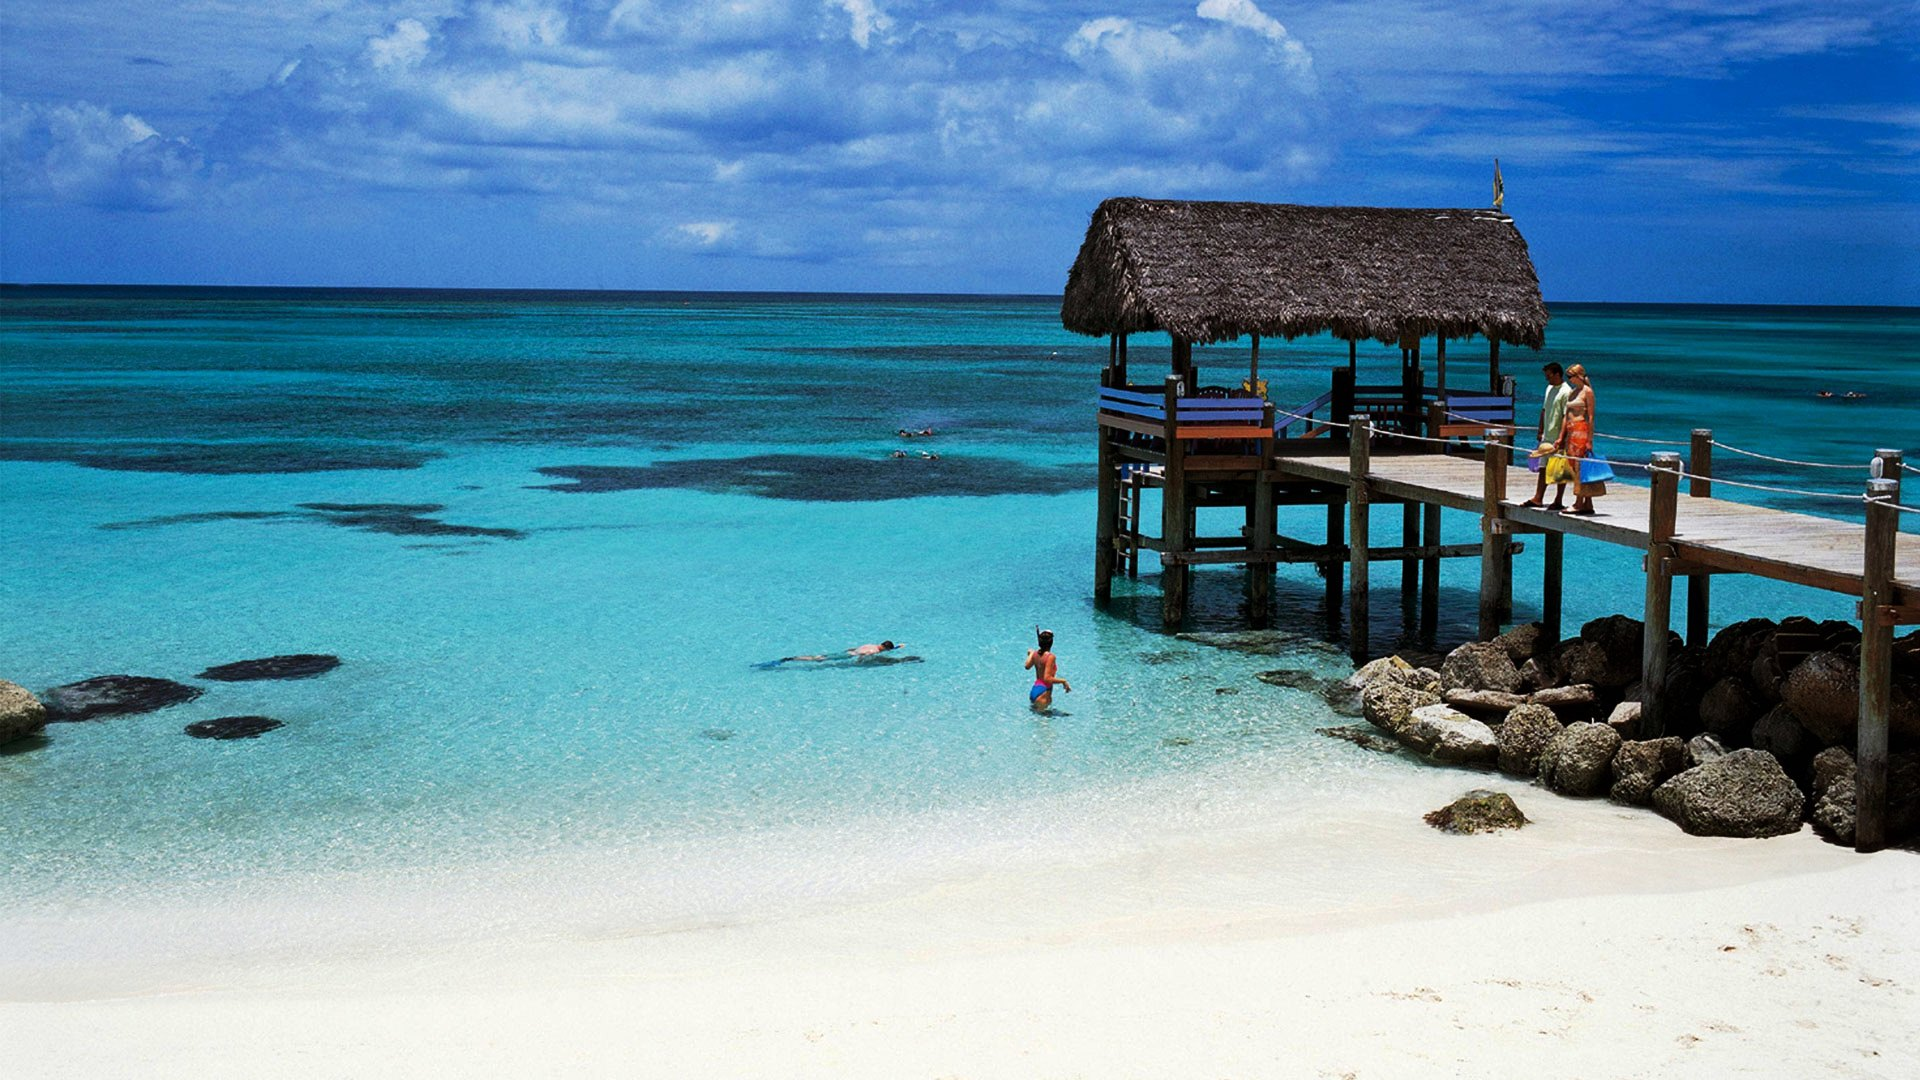 Bahamas Beaches Hd Wallpaper Background Images: Bahamas Wallpapers High Quality